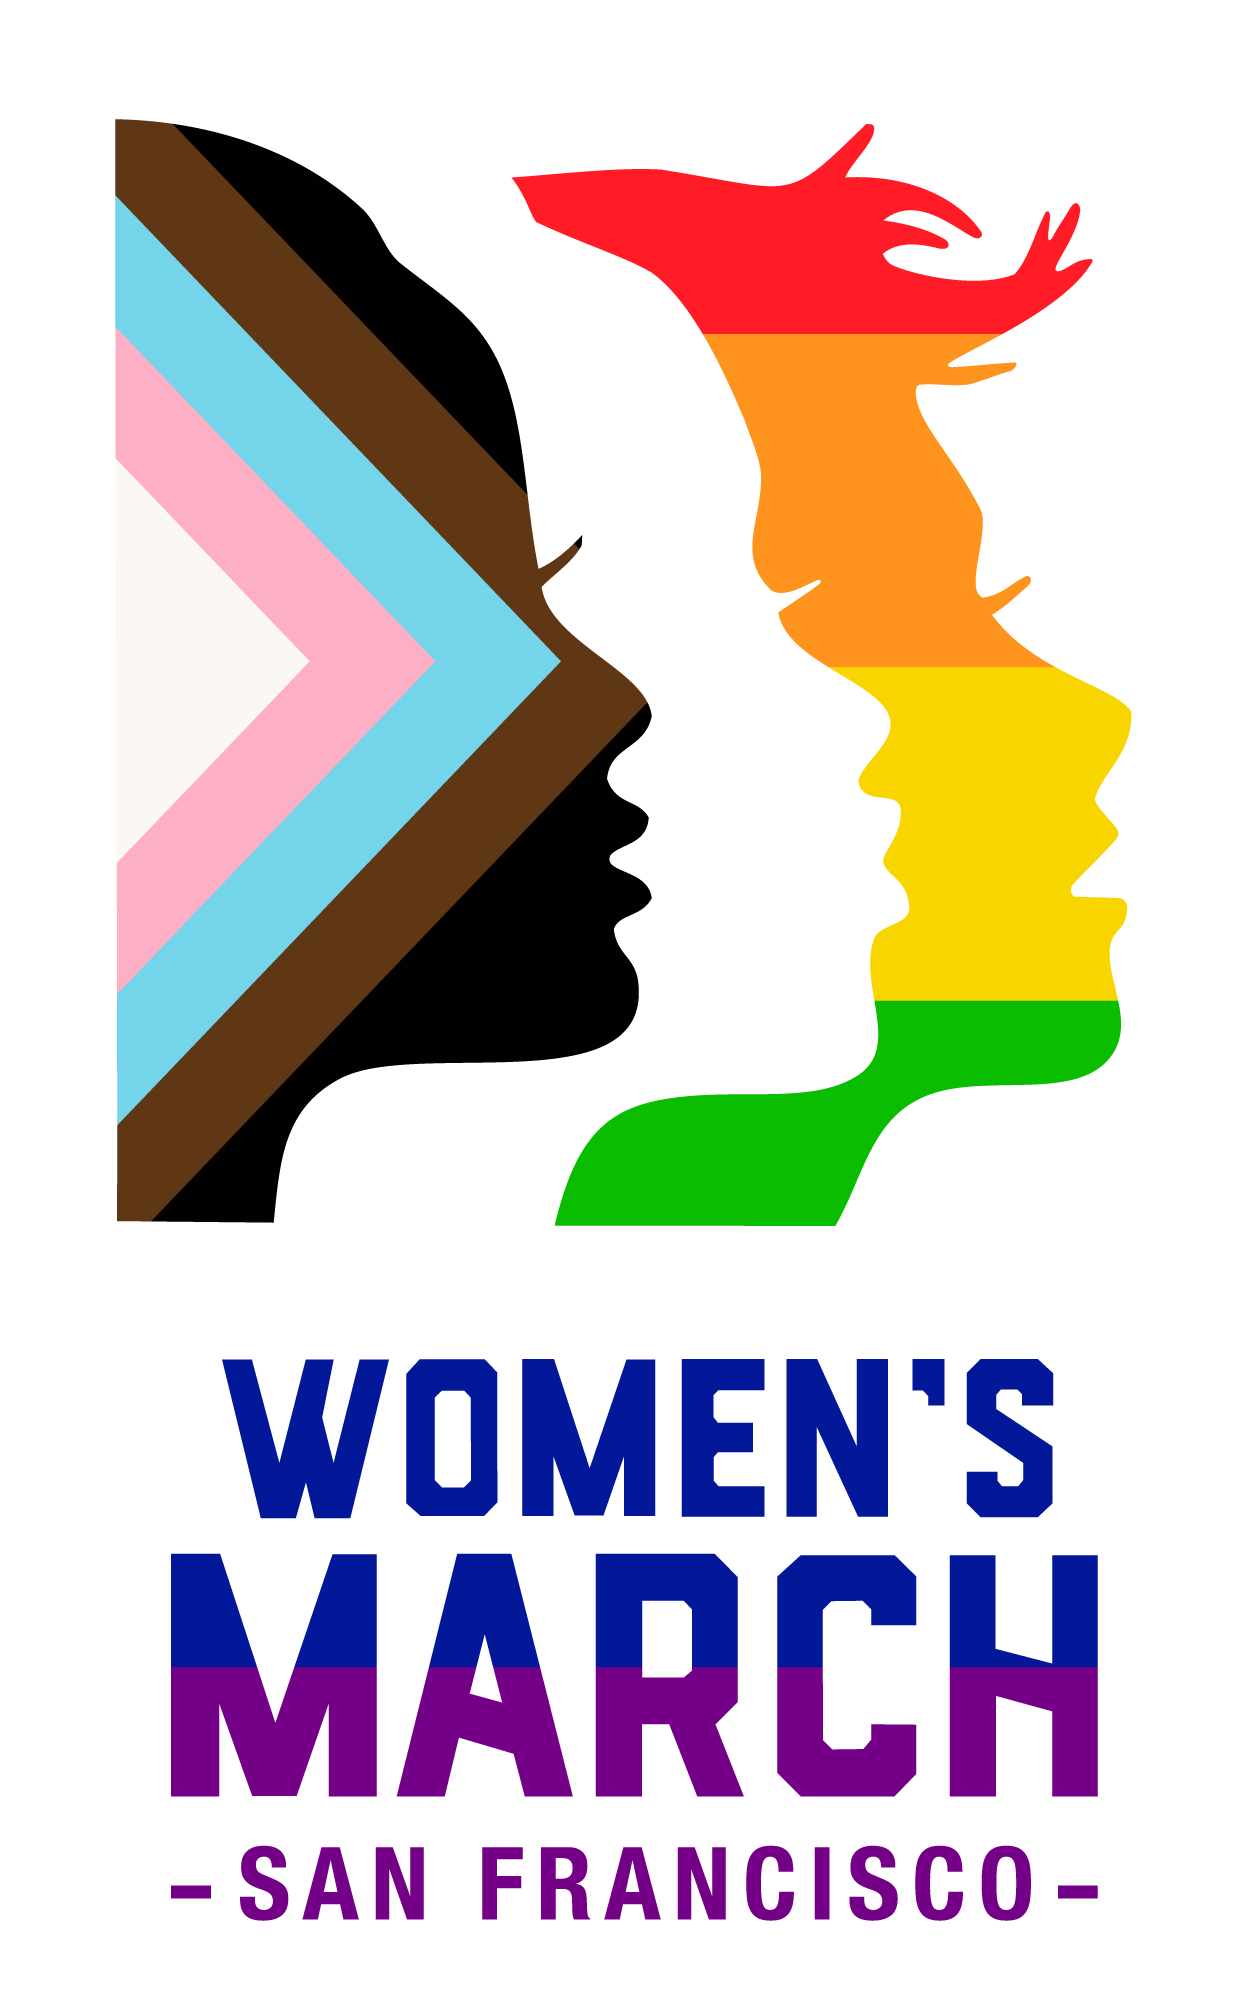 Women's March SF Pride Logo - Horizontal